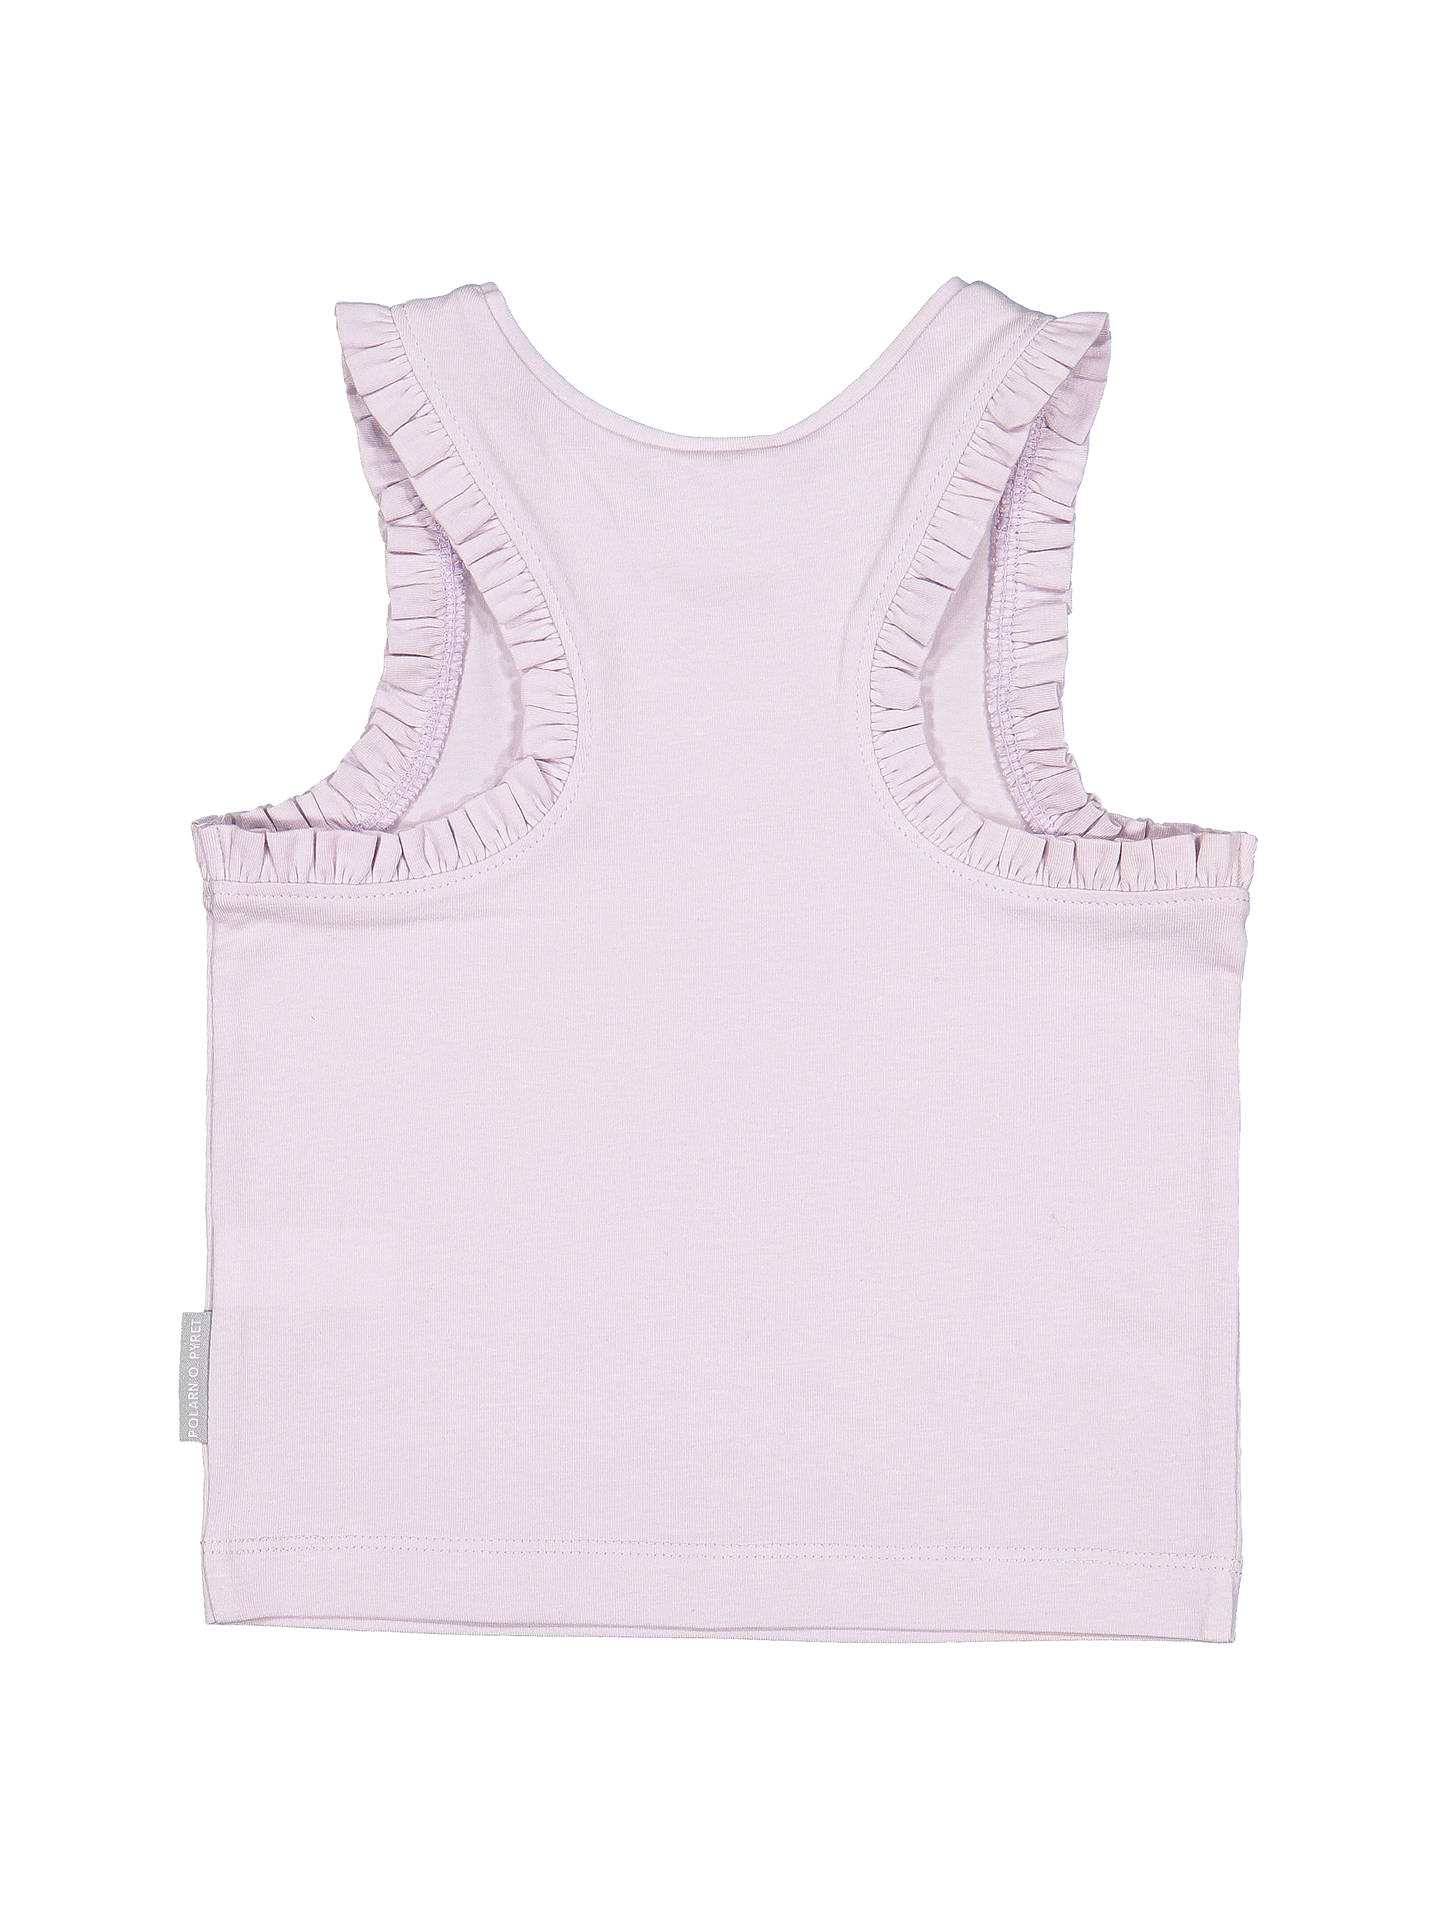 BuyPolarn O. Pyret Baby Love Slogan Top, Purple, 6-9 months Online at johnlewis.com